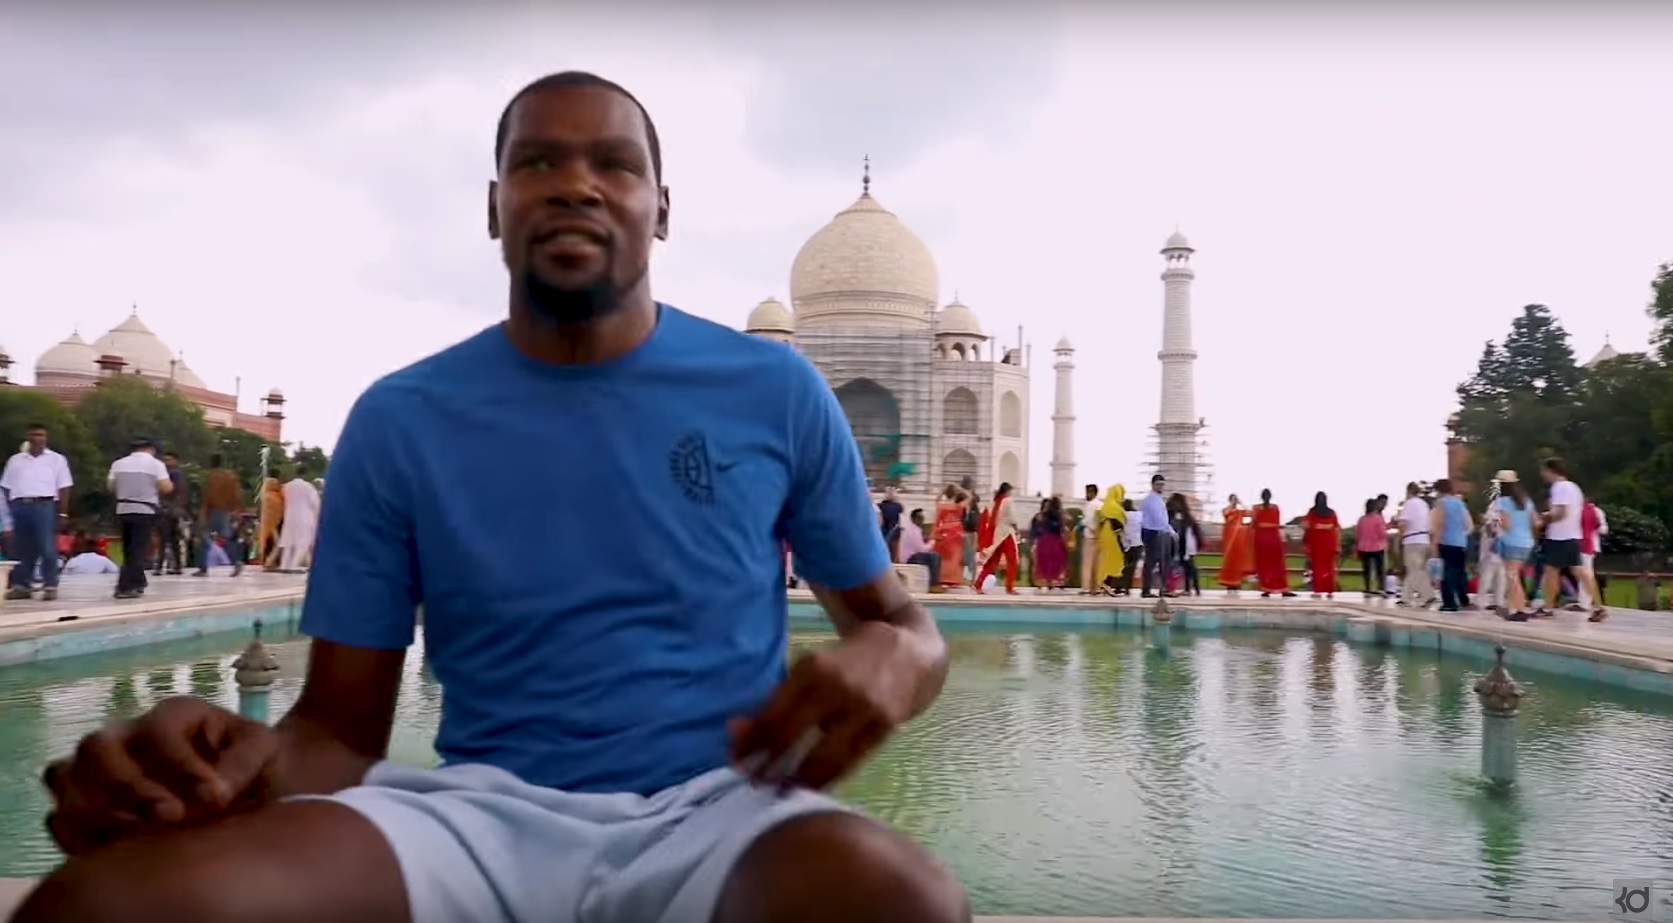 Dear Kevin Durant, you disrespected Indians who welcomed you with open arms